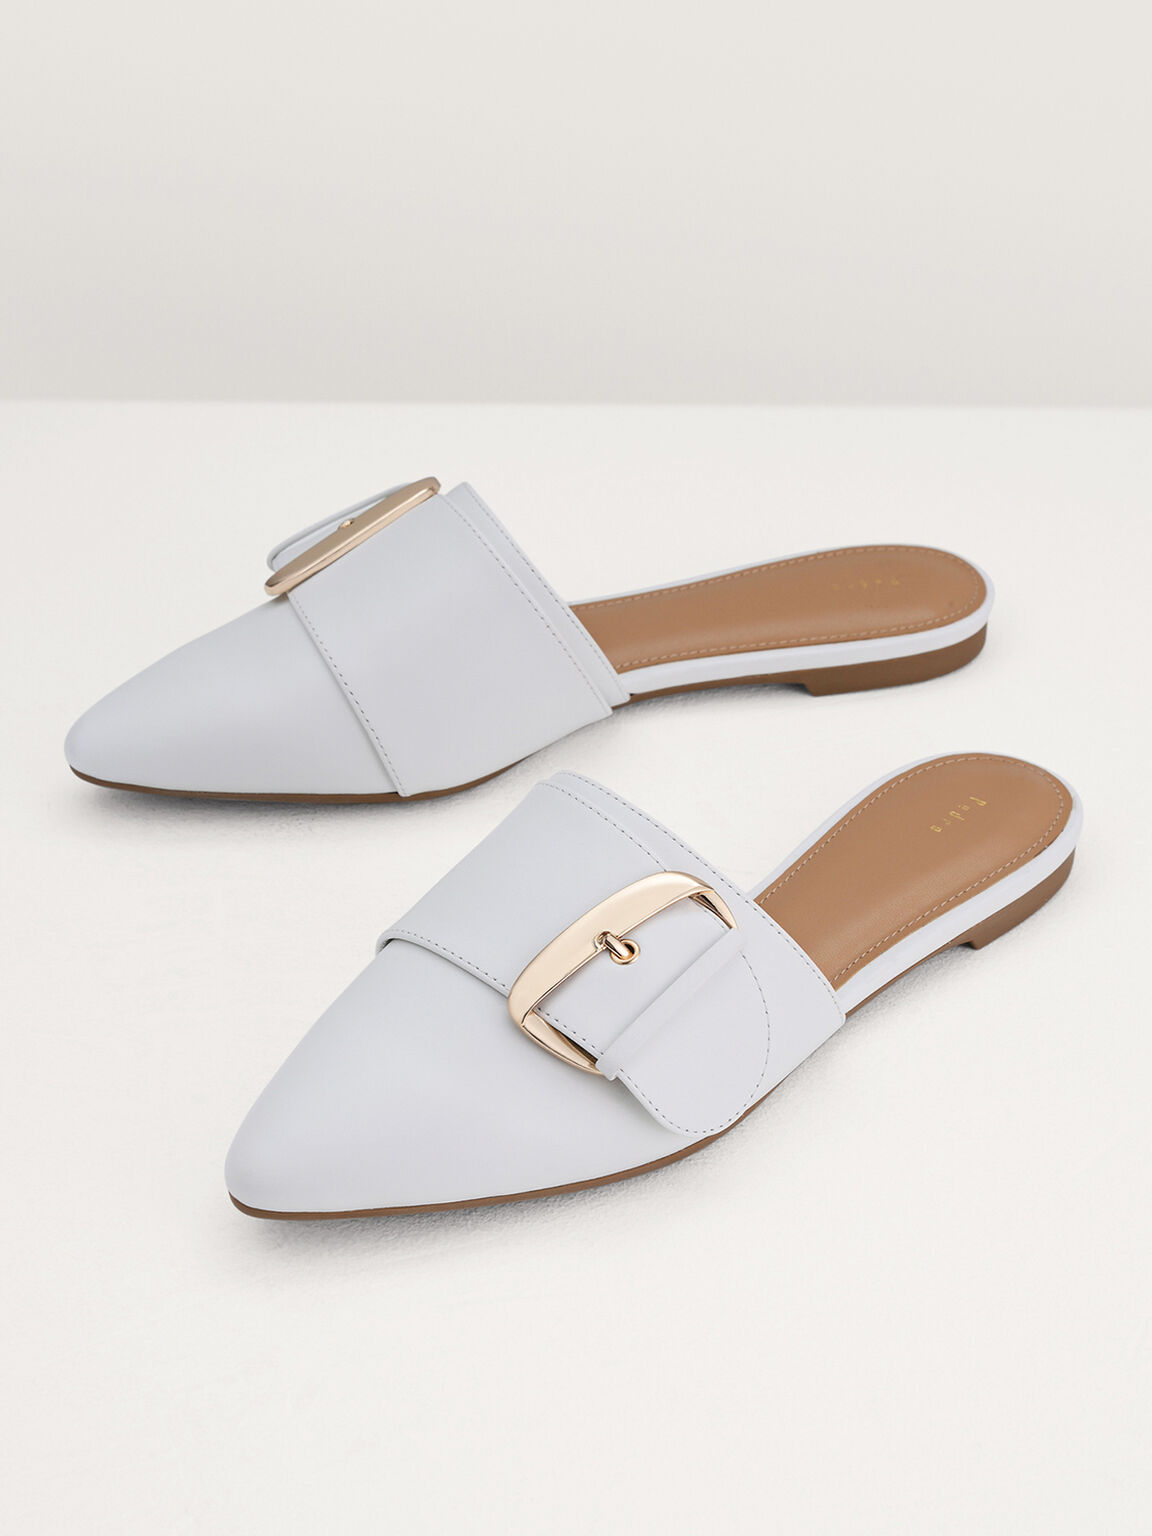 Leather Buckled Mules, White, hi-res